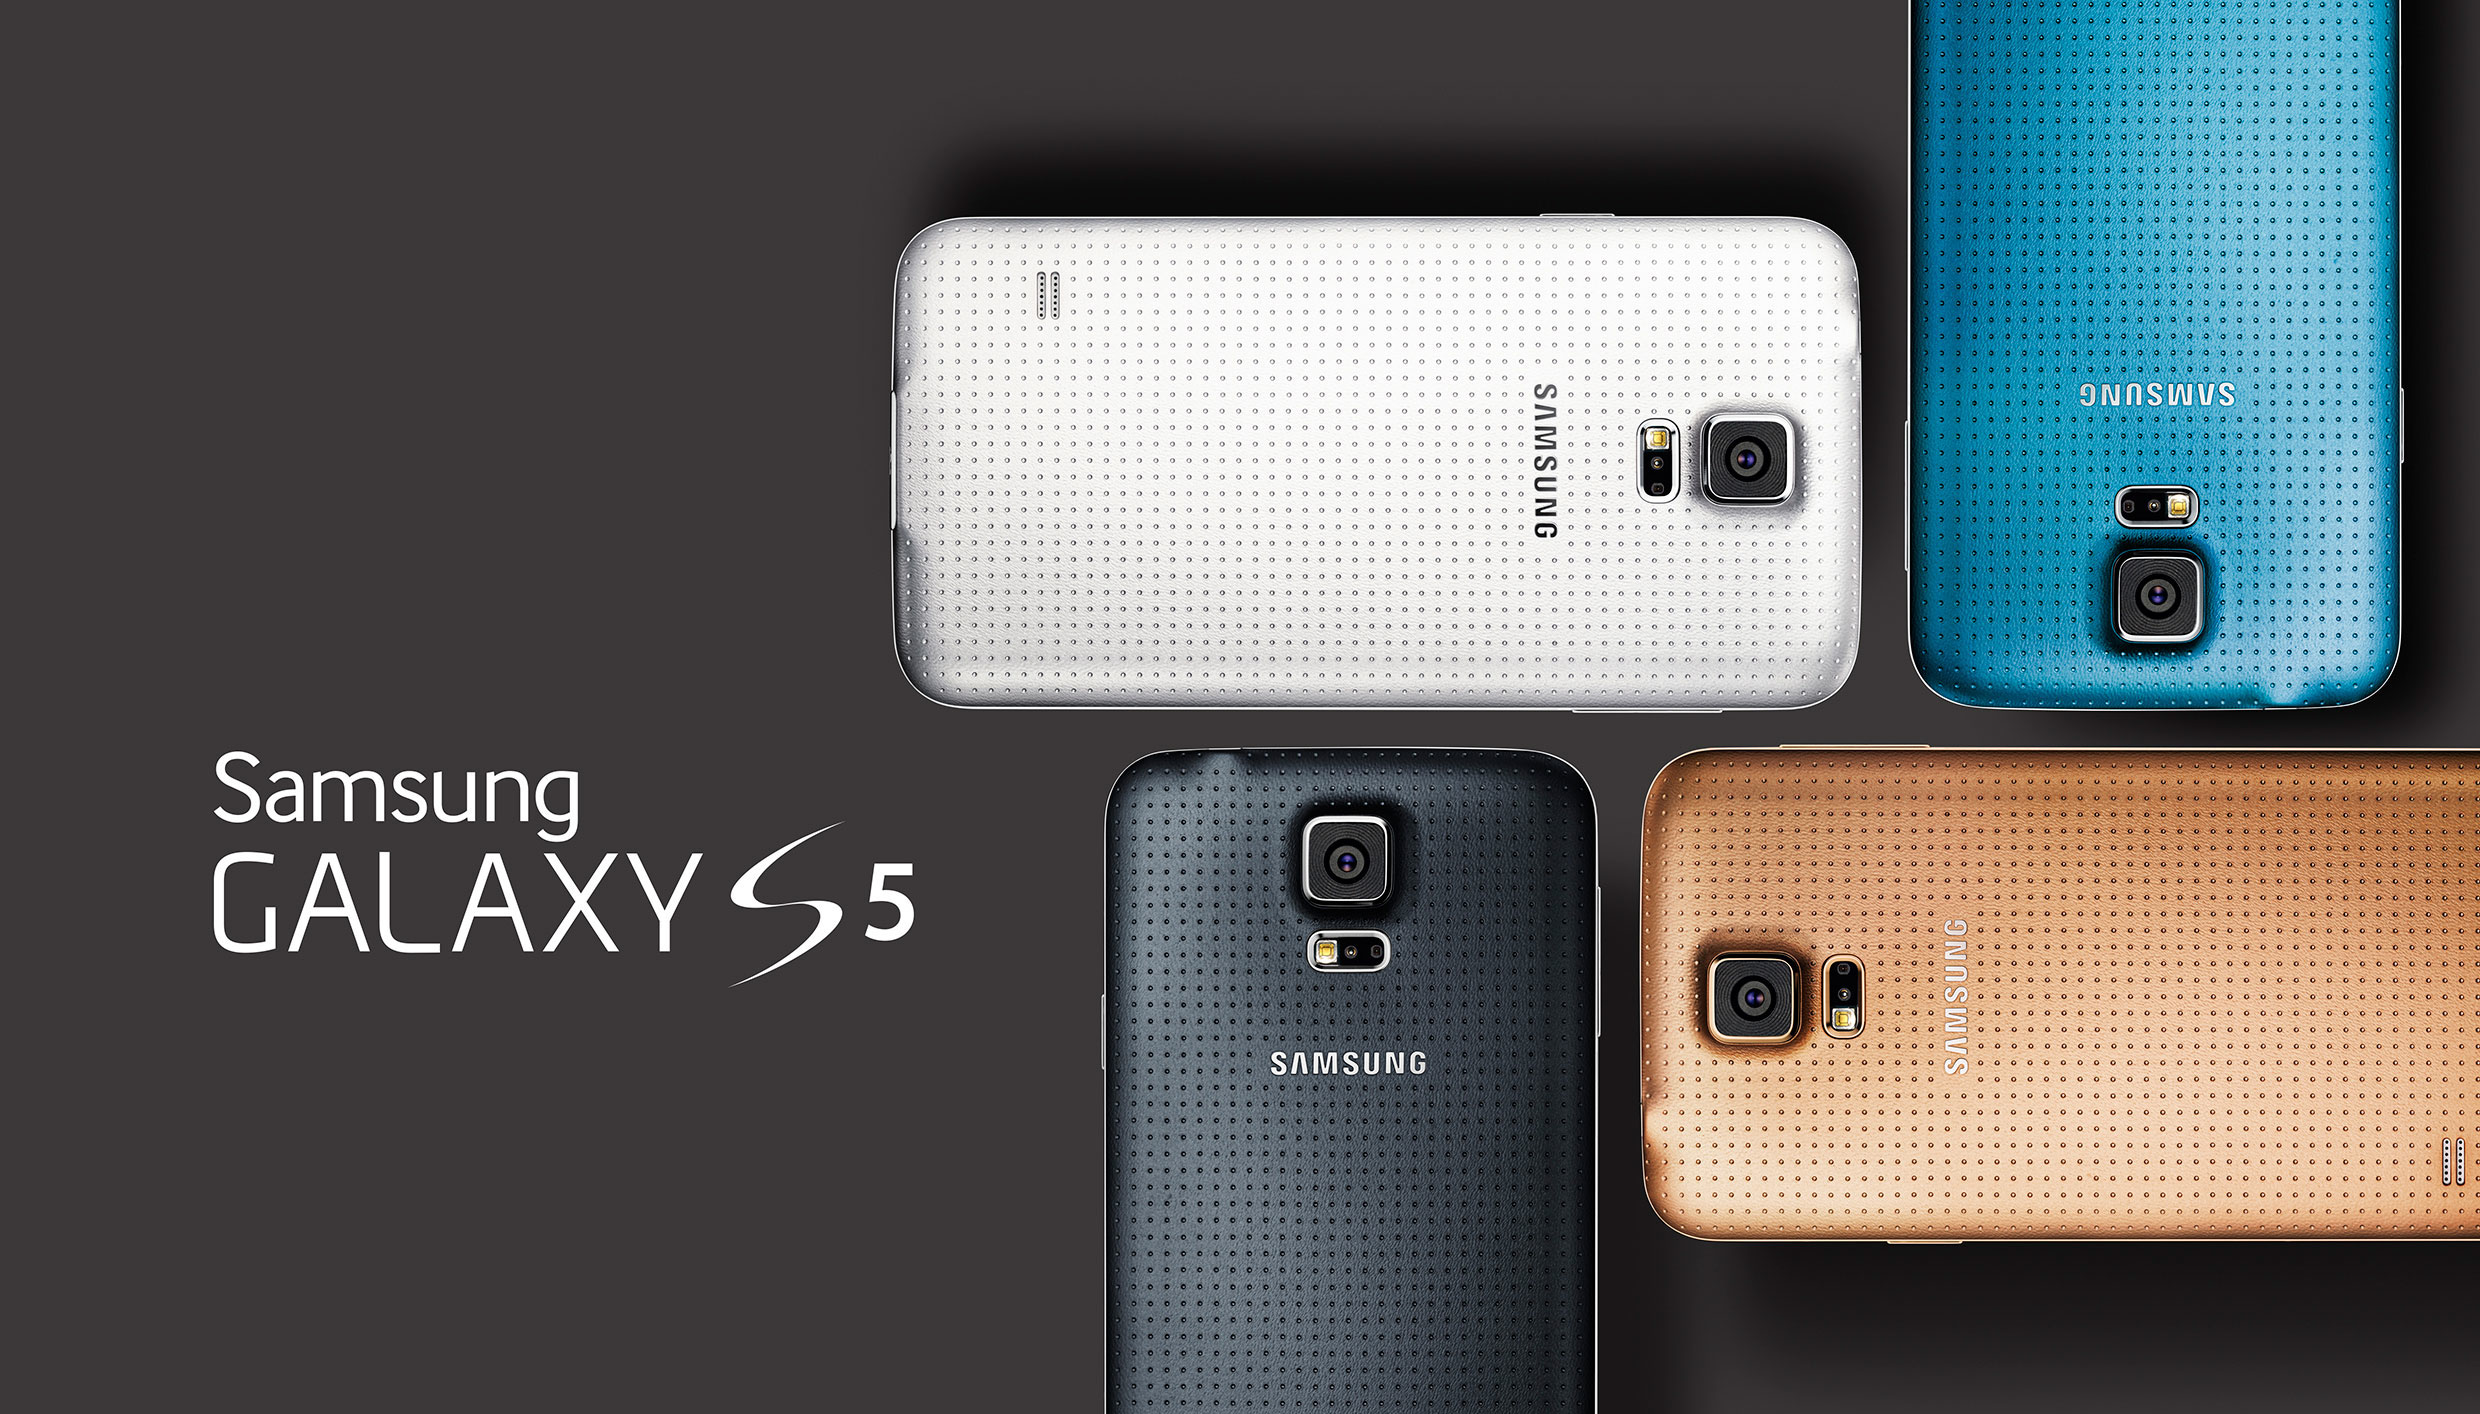 Korea's Top Carrier Starts Selling Samsung's Galaxy S5 Early